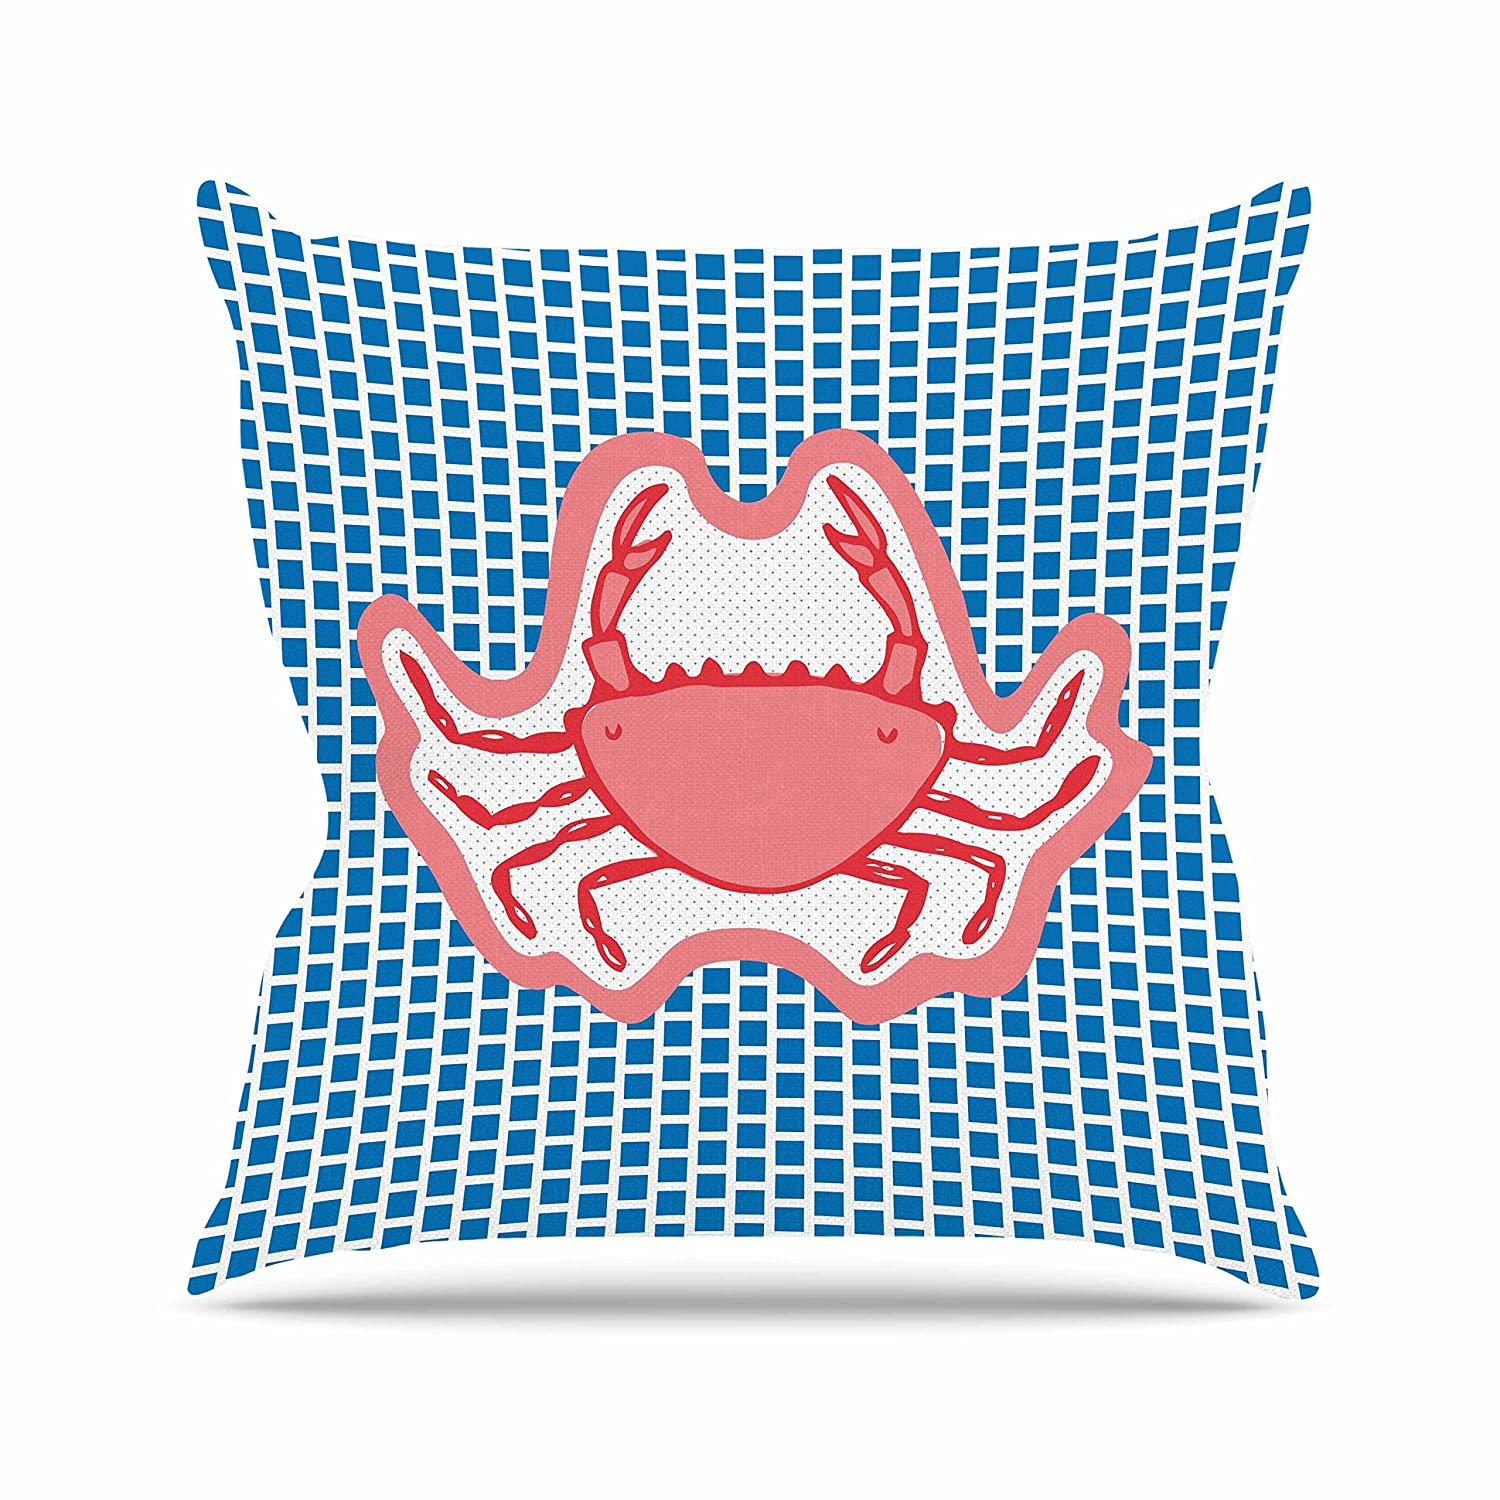 26 by 26 Kess InHouse MaJoBV Cangrejo Red Crab Throw Pillow